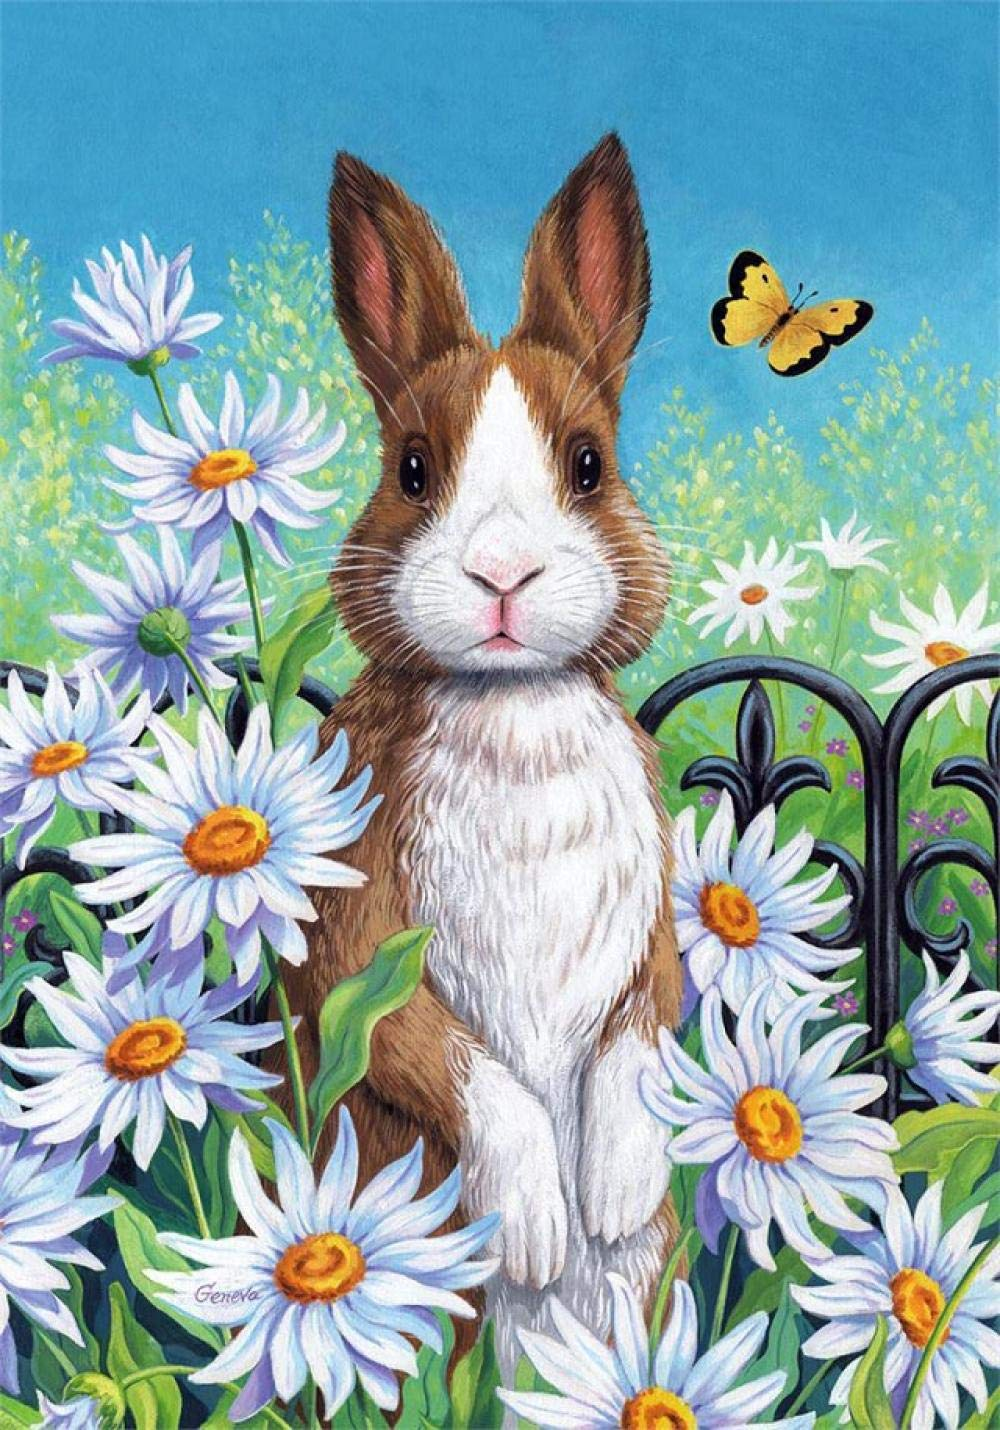 Bunny In a Field Paint by Numbers